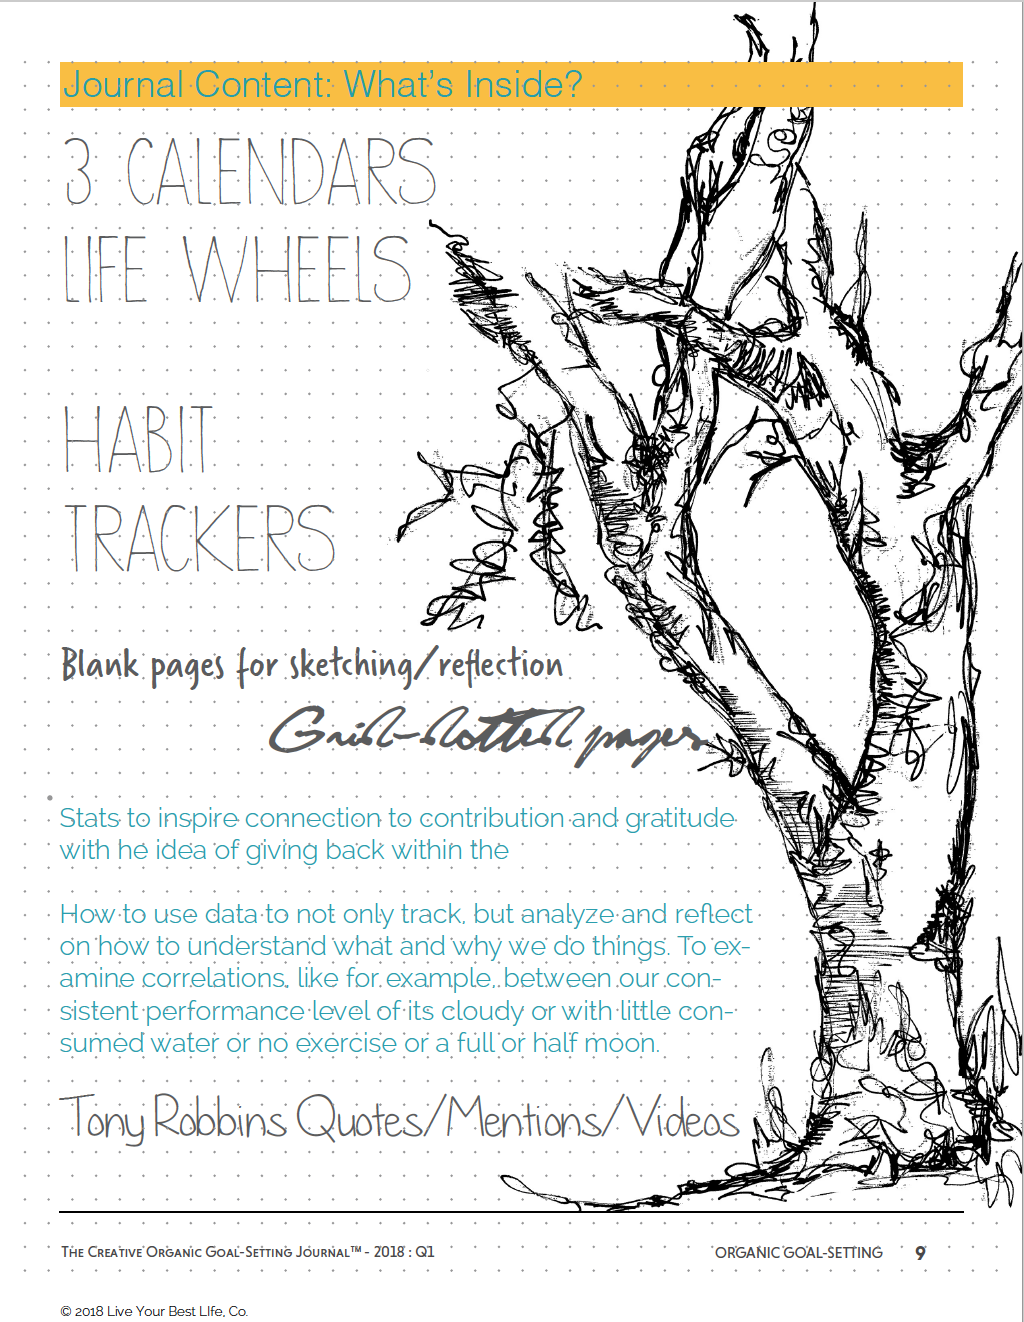 creative organic goal setting journal tony robbins new years resolutions.png